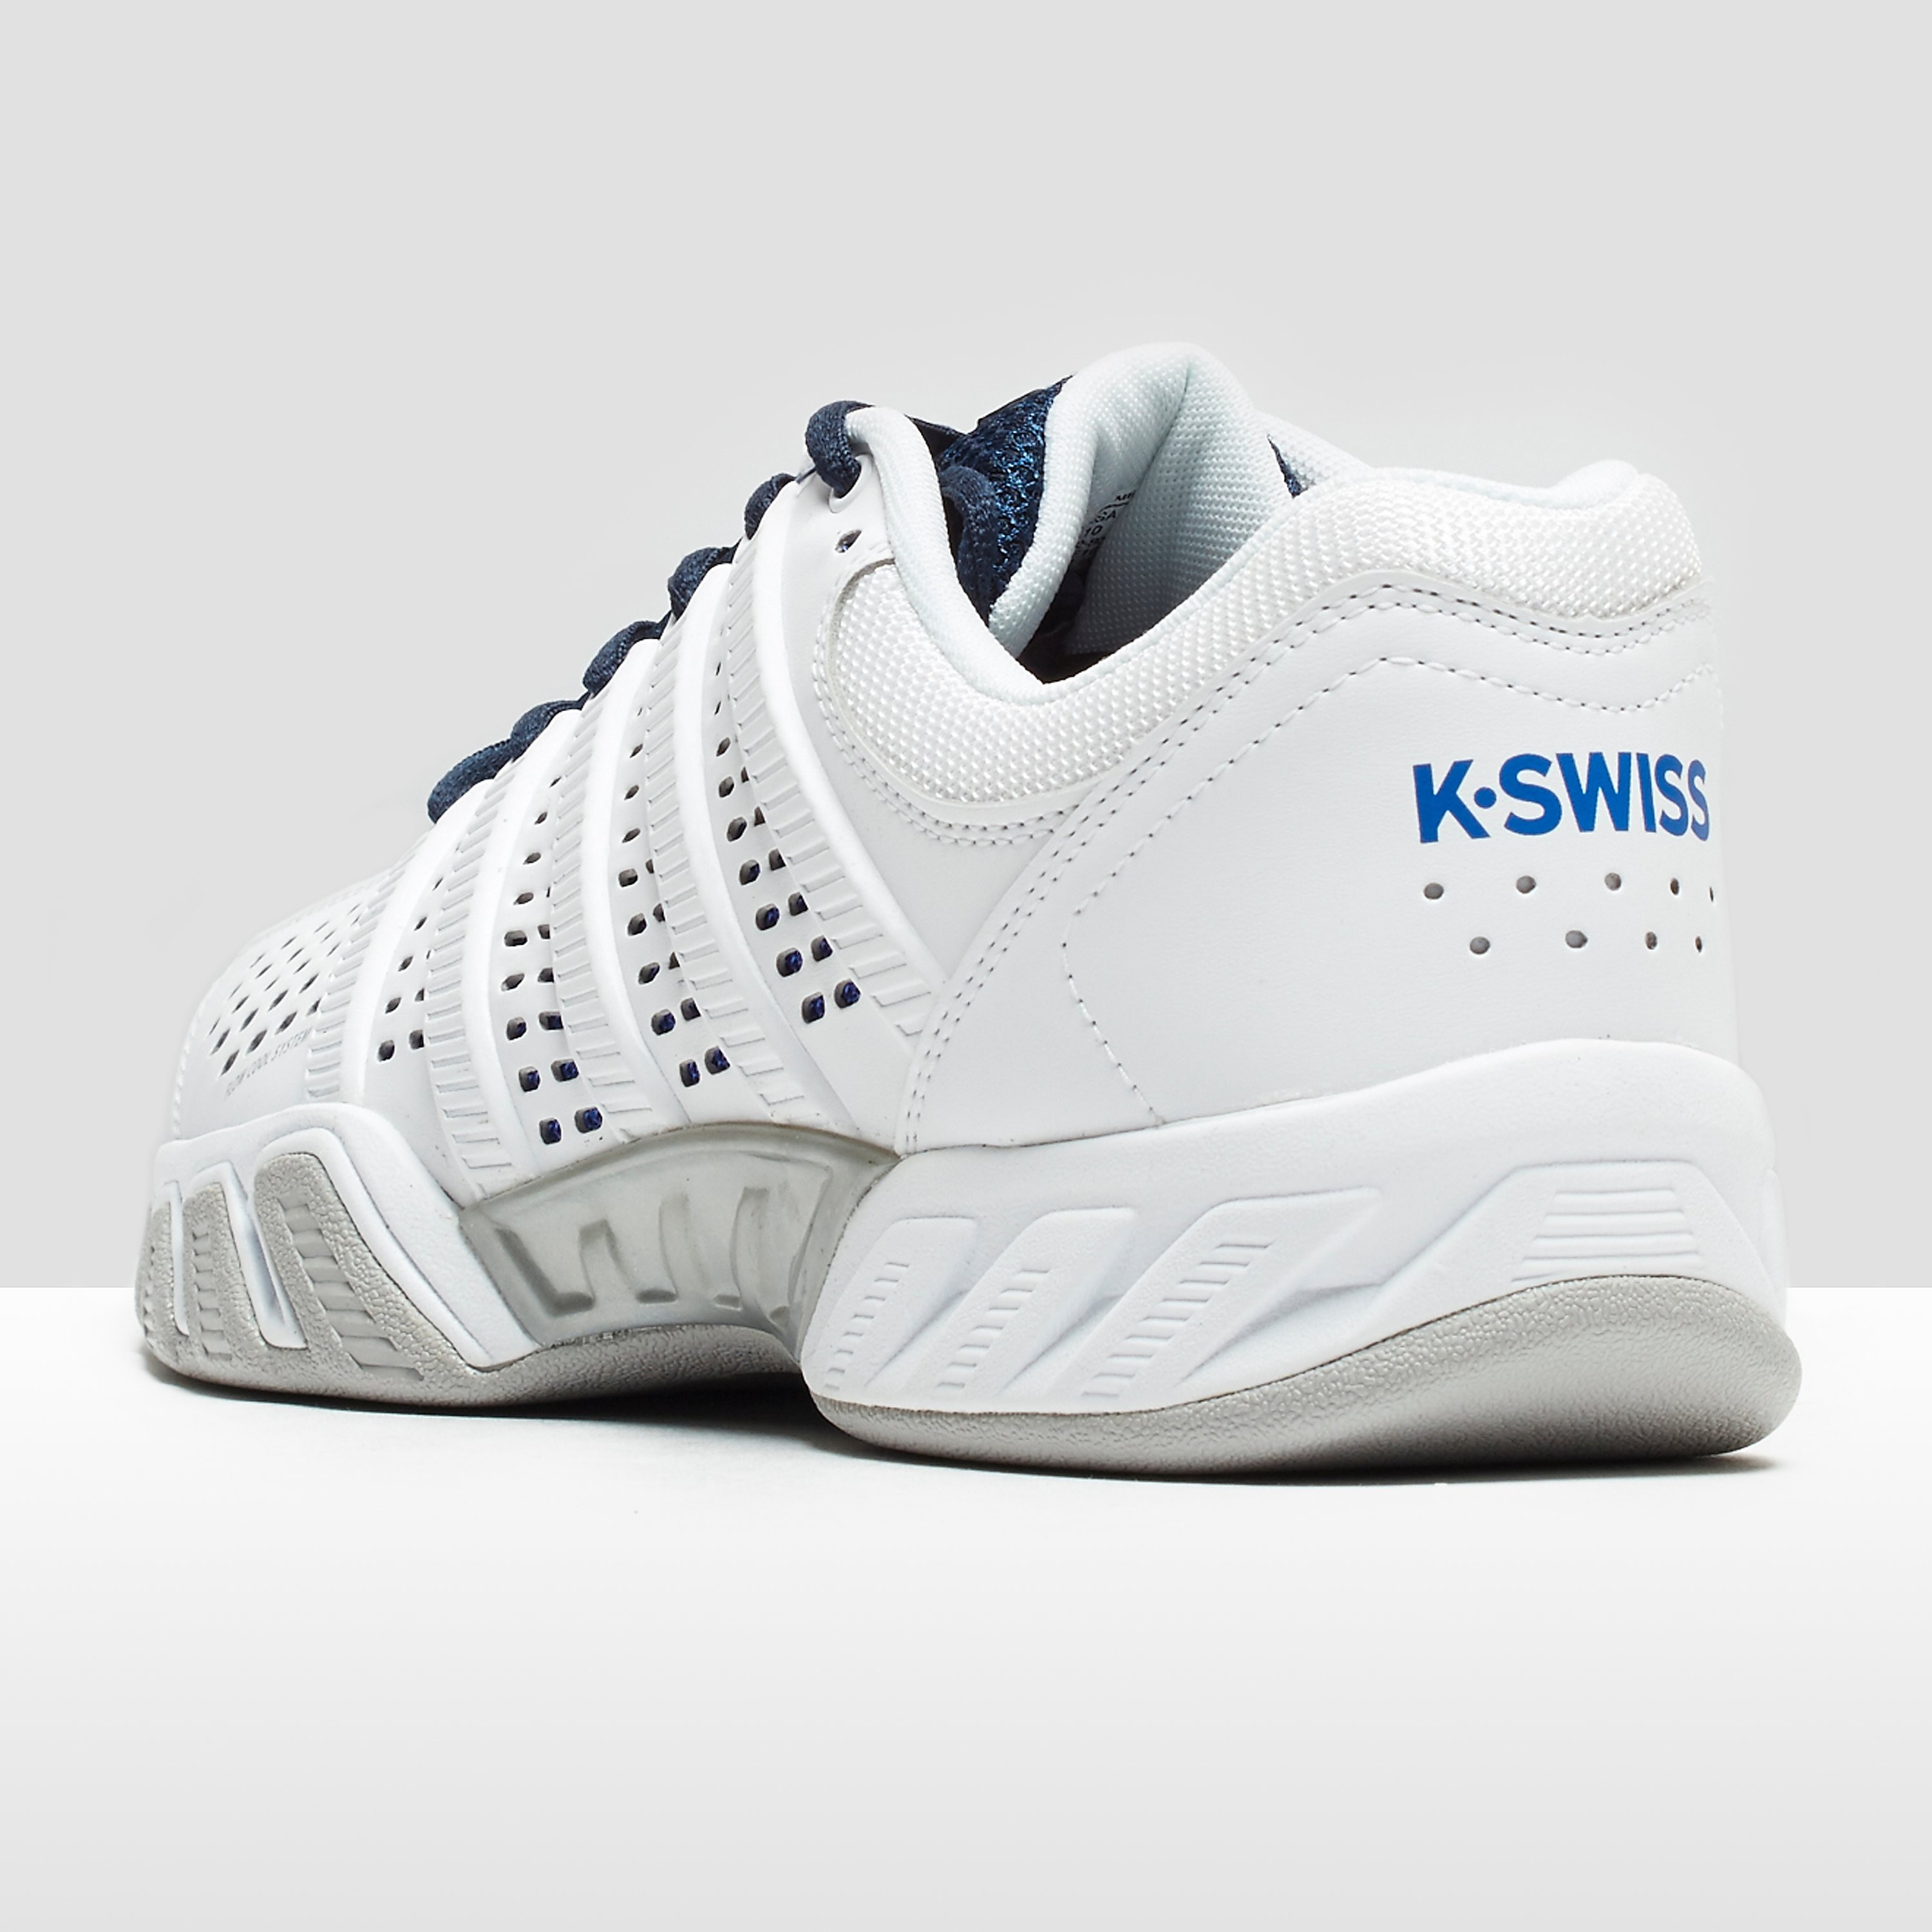 K-Swiss Bigshot Light 2.5 Men's Tennis Shoe